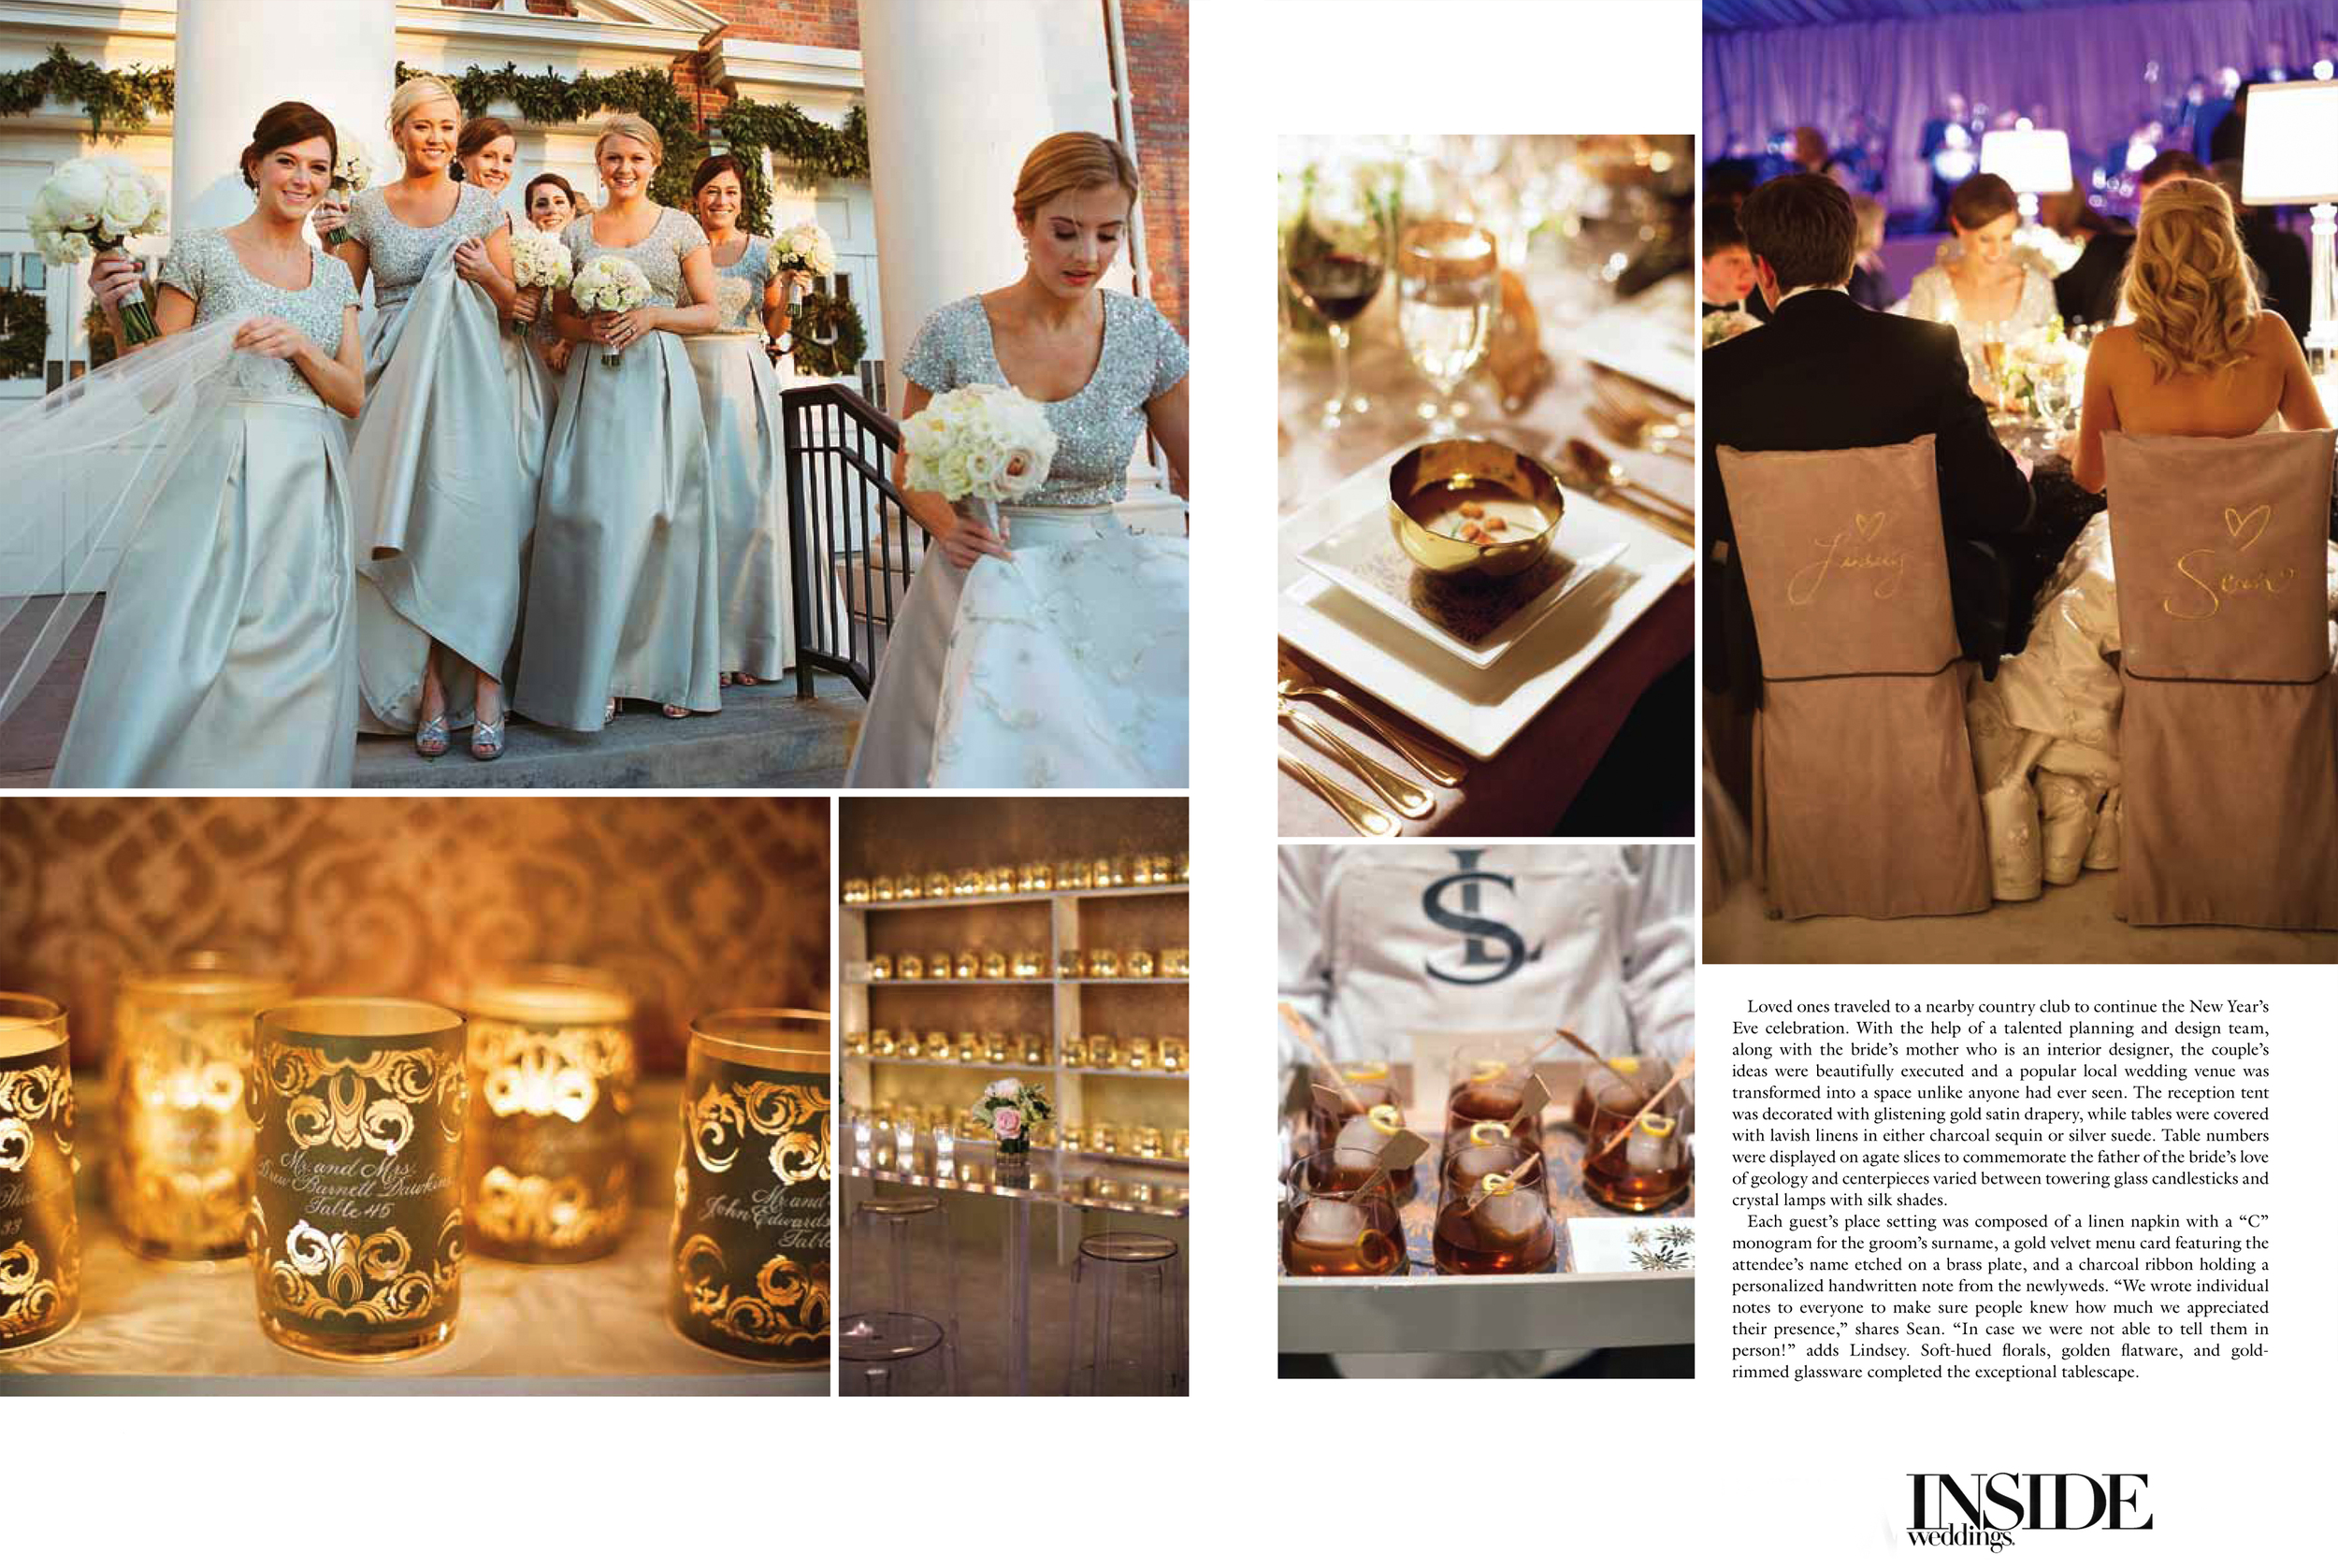 Inside Weddings 5 6.jpg